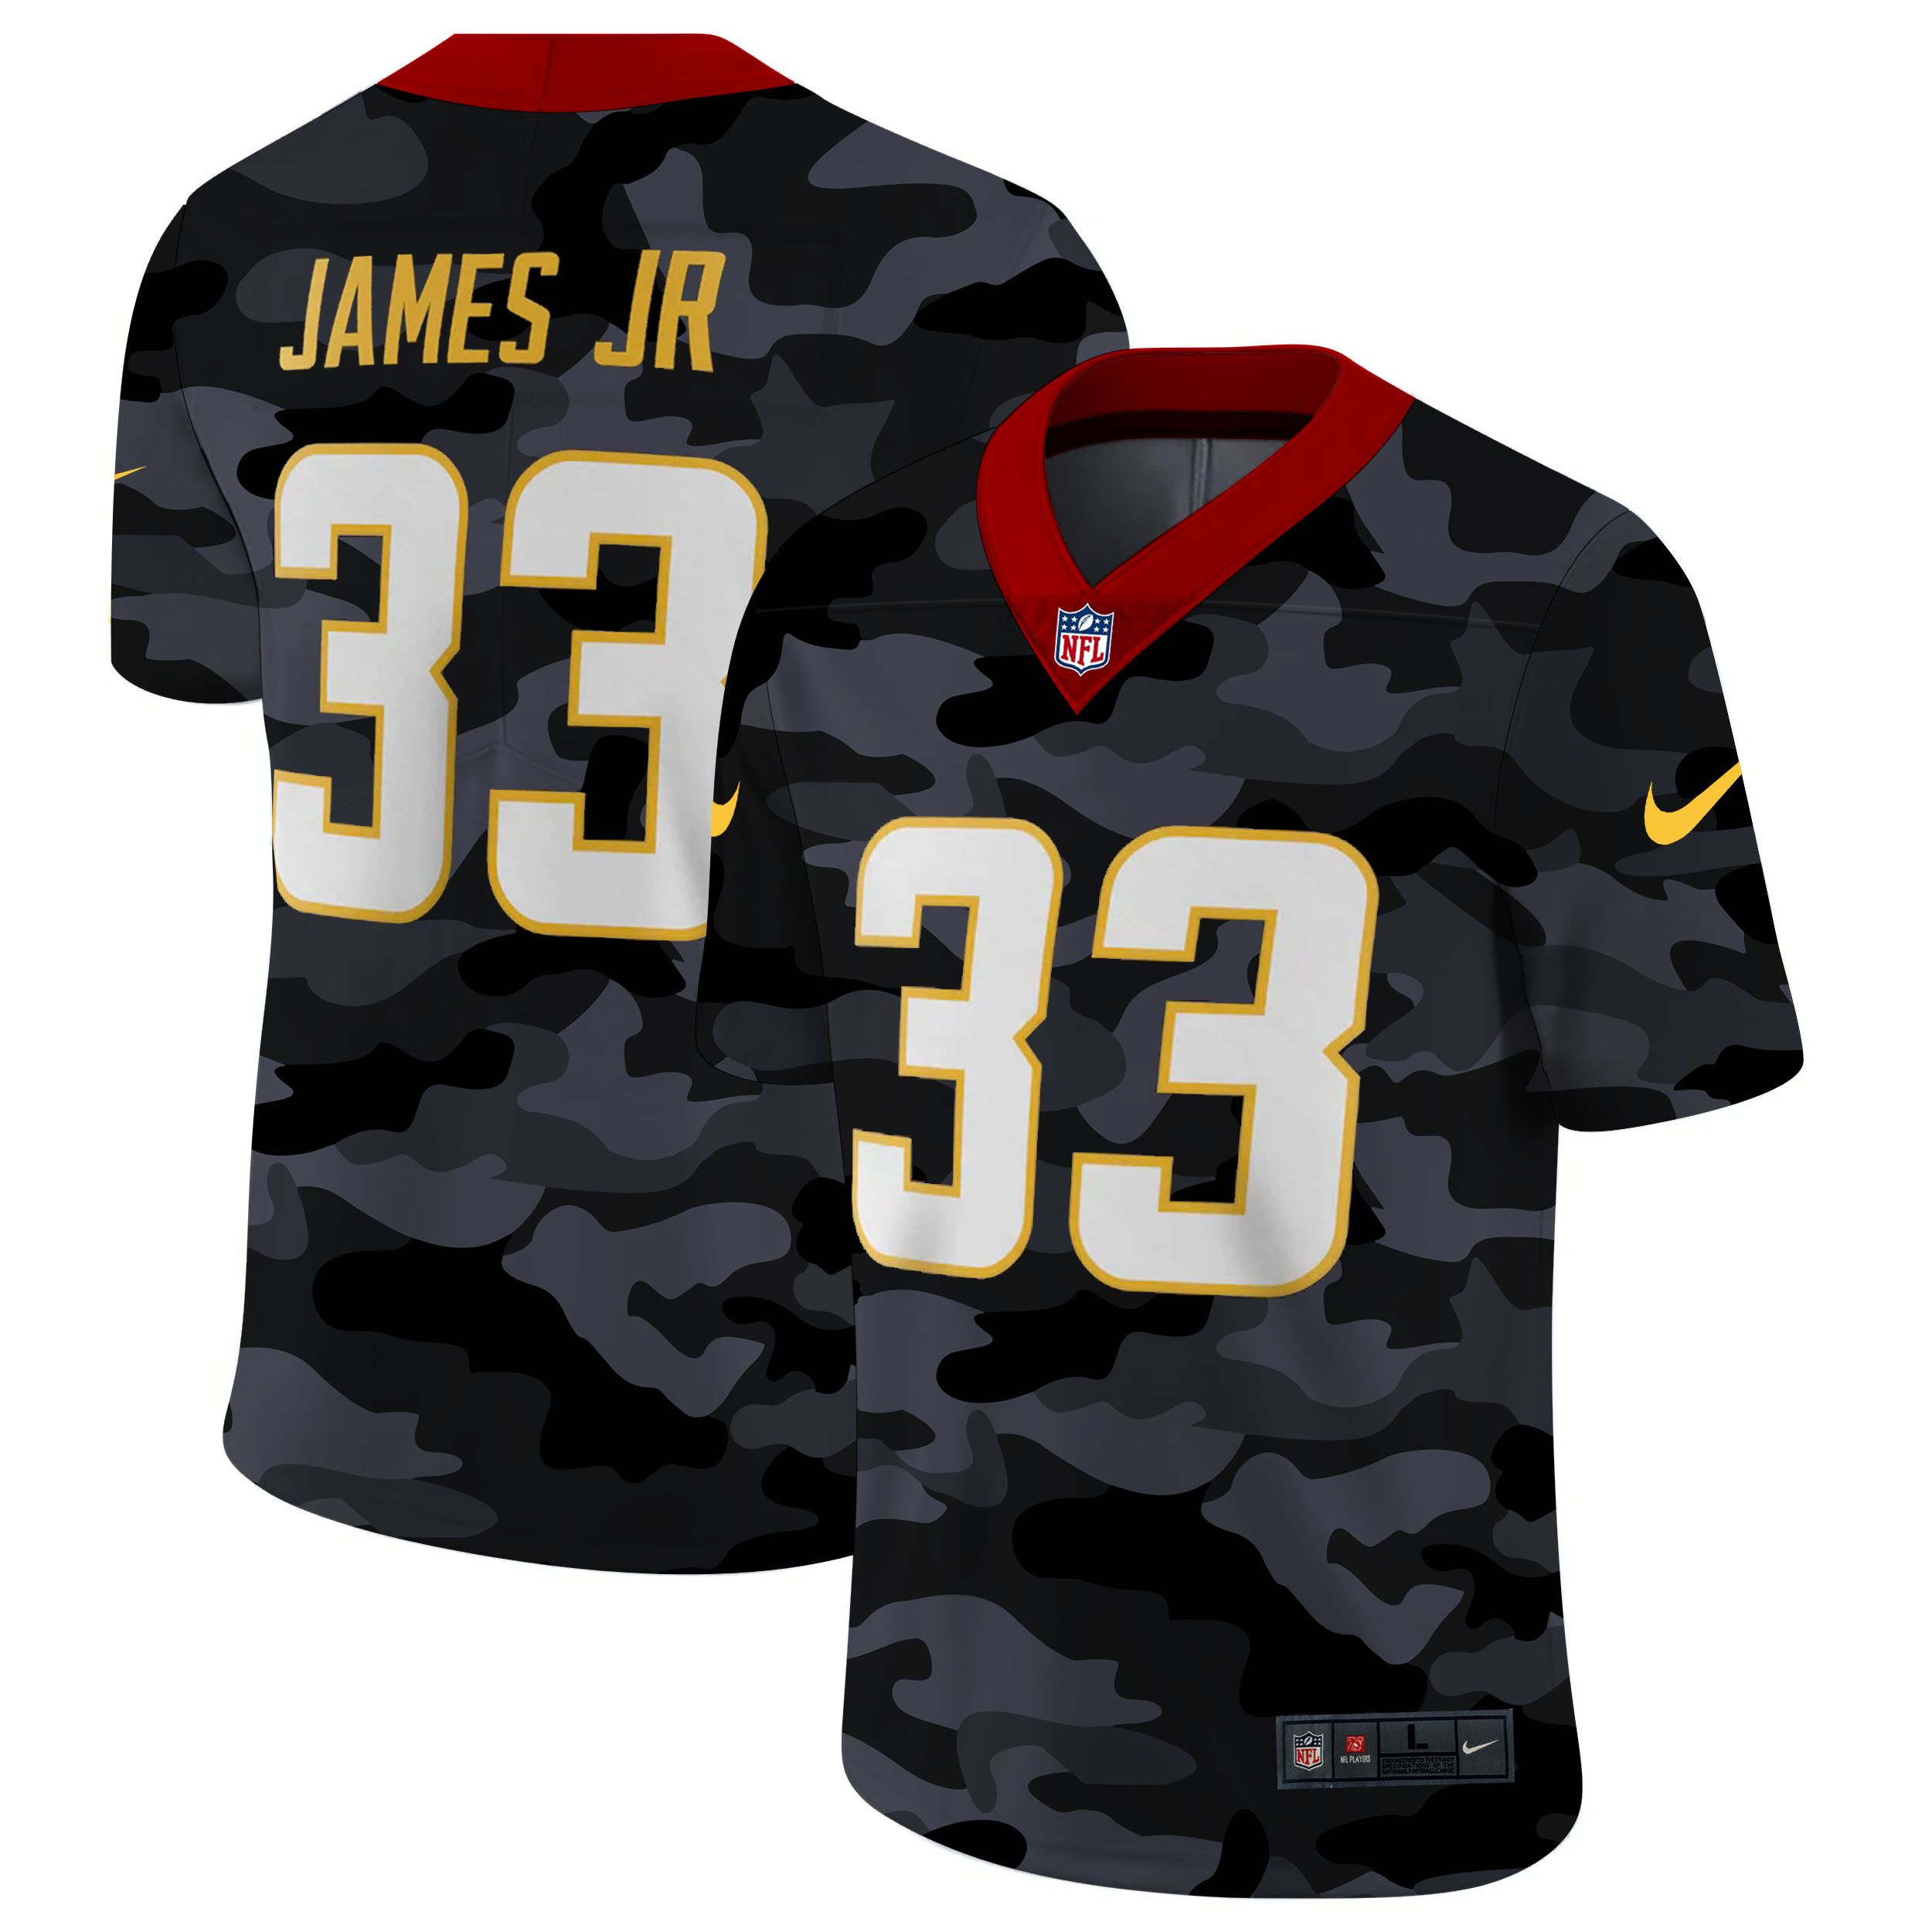 Wholesale Men San Diego Chargers 33 James jr 2020 Nike 2ndCamo Salute to Service Limited NFL Jerseys